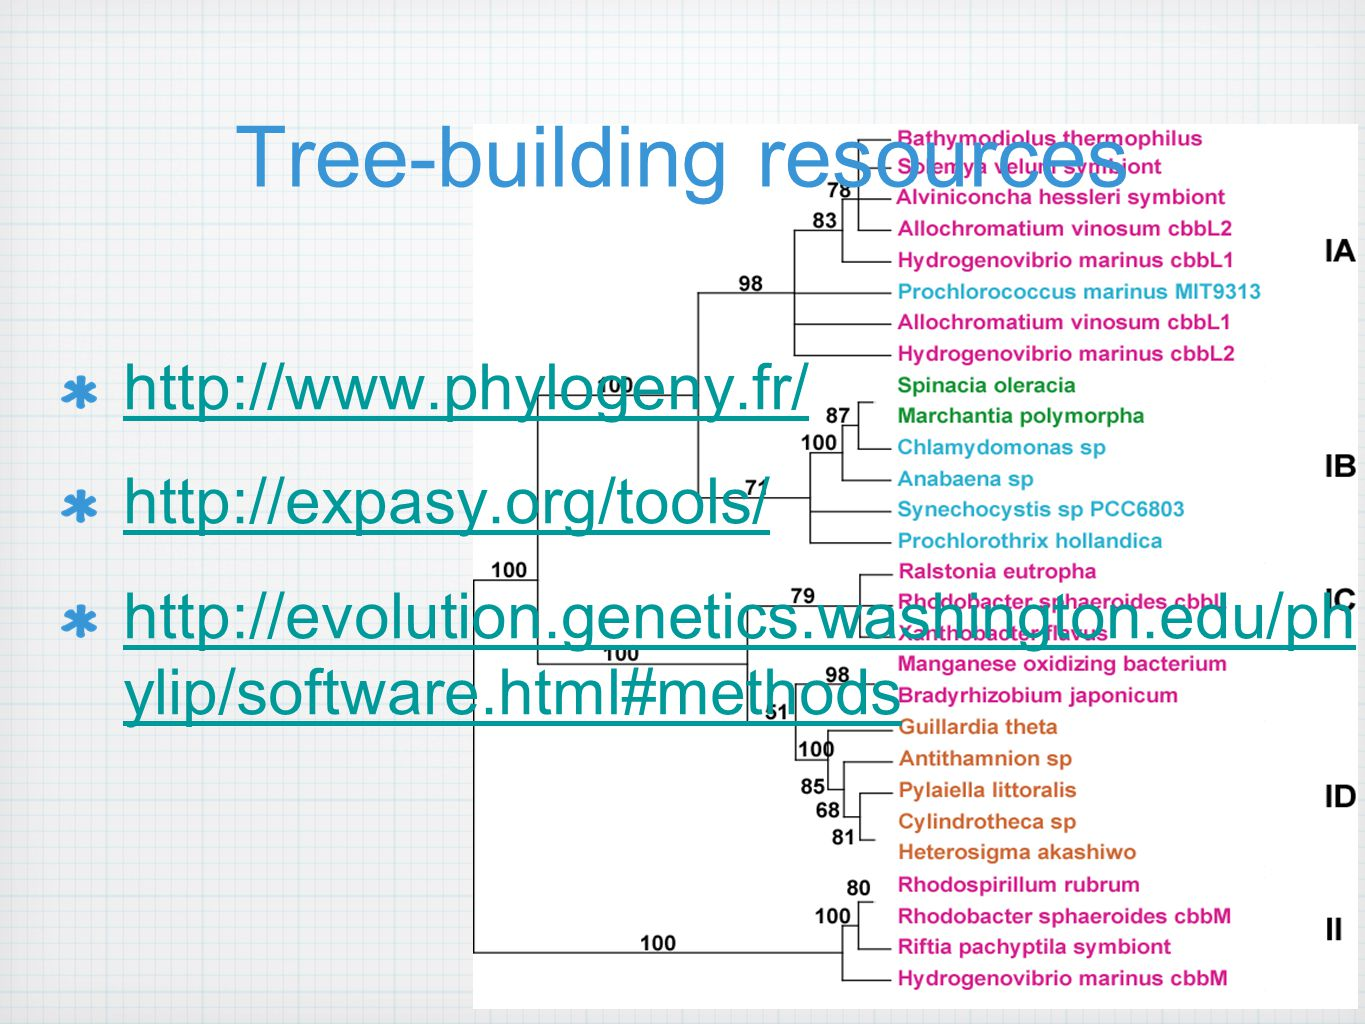 Tree-building resources http://www.phylogeny.fr/ http://expasy.org/tools/ http://evolution.genetics.washington.edu/ph ylip/software.html#methods